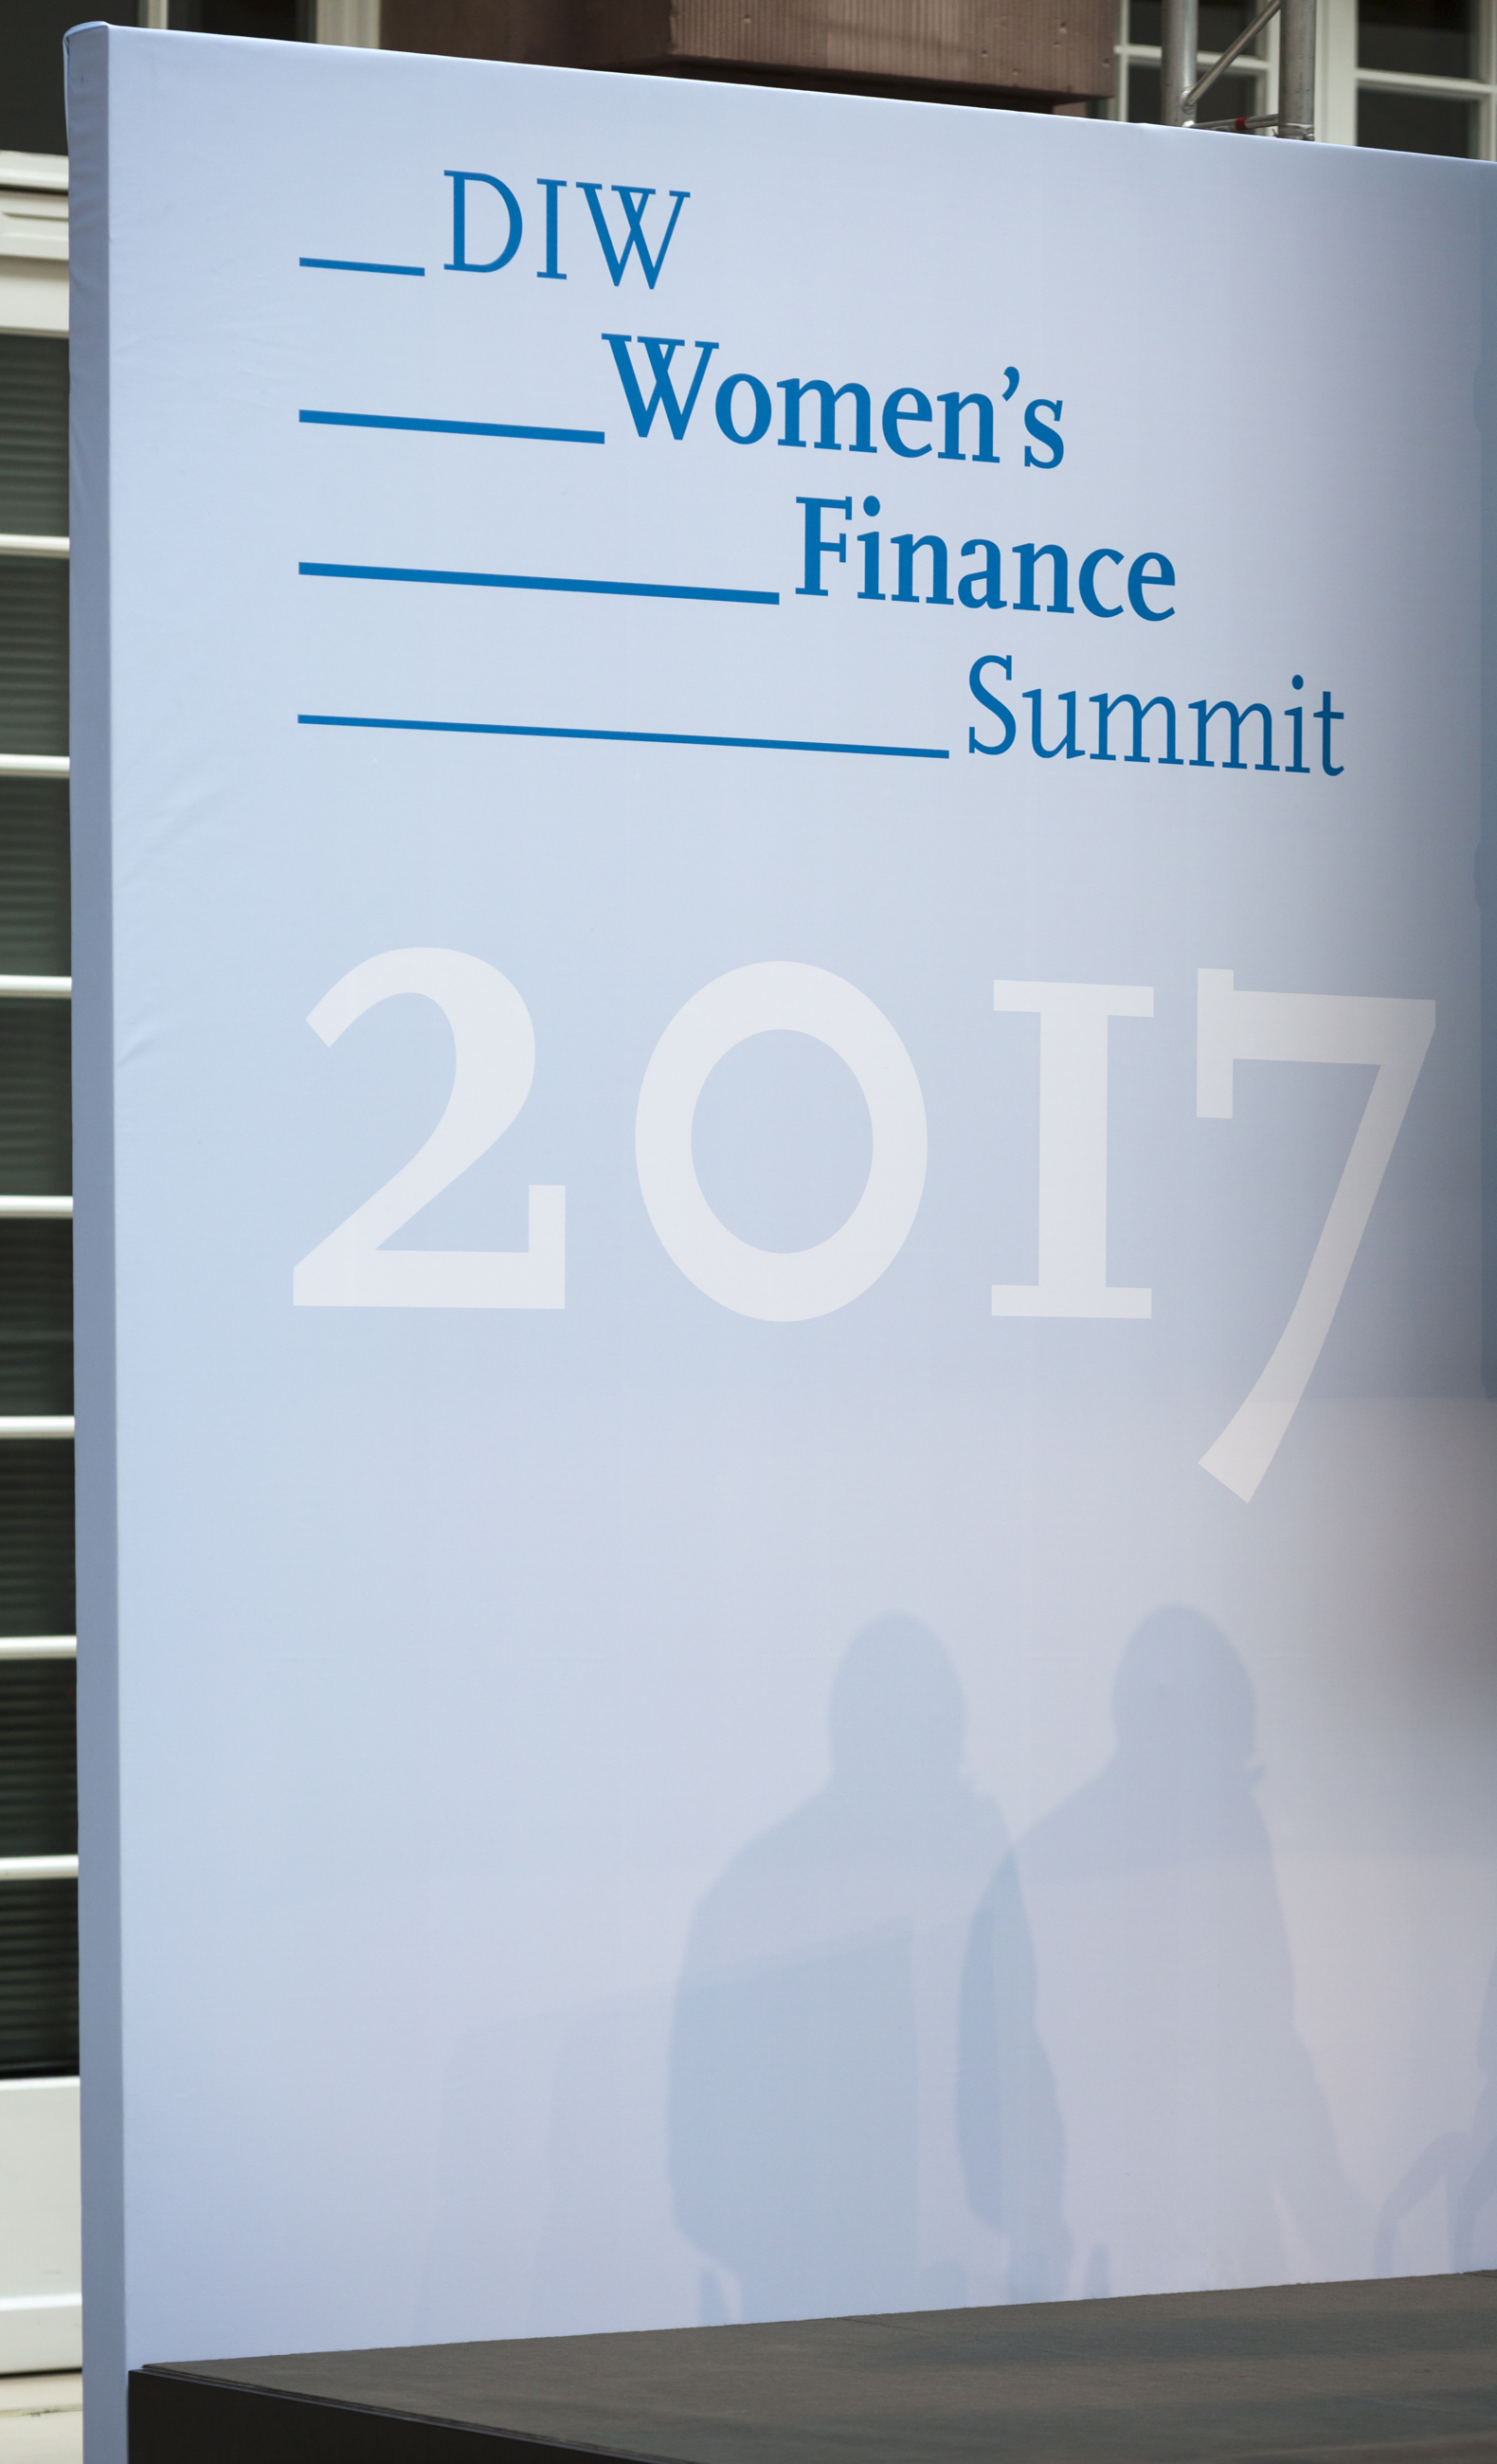 DIW Women's Finance Summit 2017